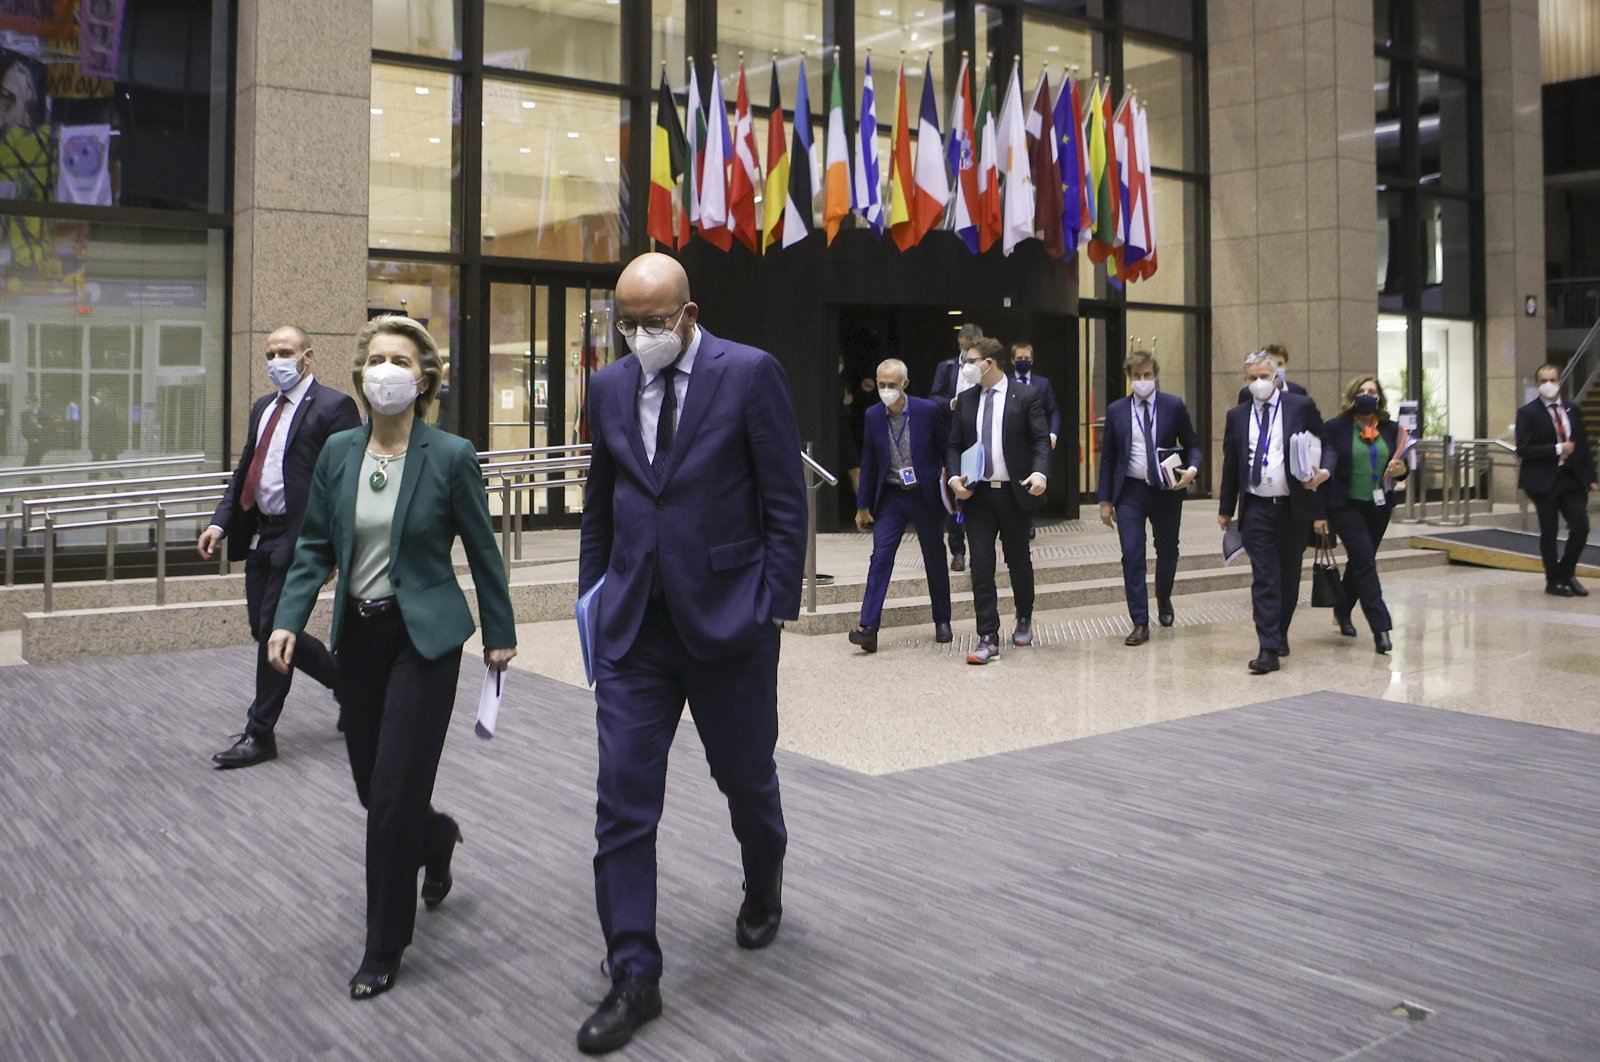 European Commission President Ursula von der Leyen (L) and European Council President Charles Michel arrive for an online joint news conference at the end of a European Union summit at the European Council building in Brussels, Belgium, March 25, 2021. (AP)